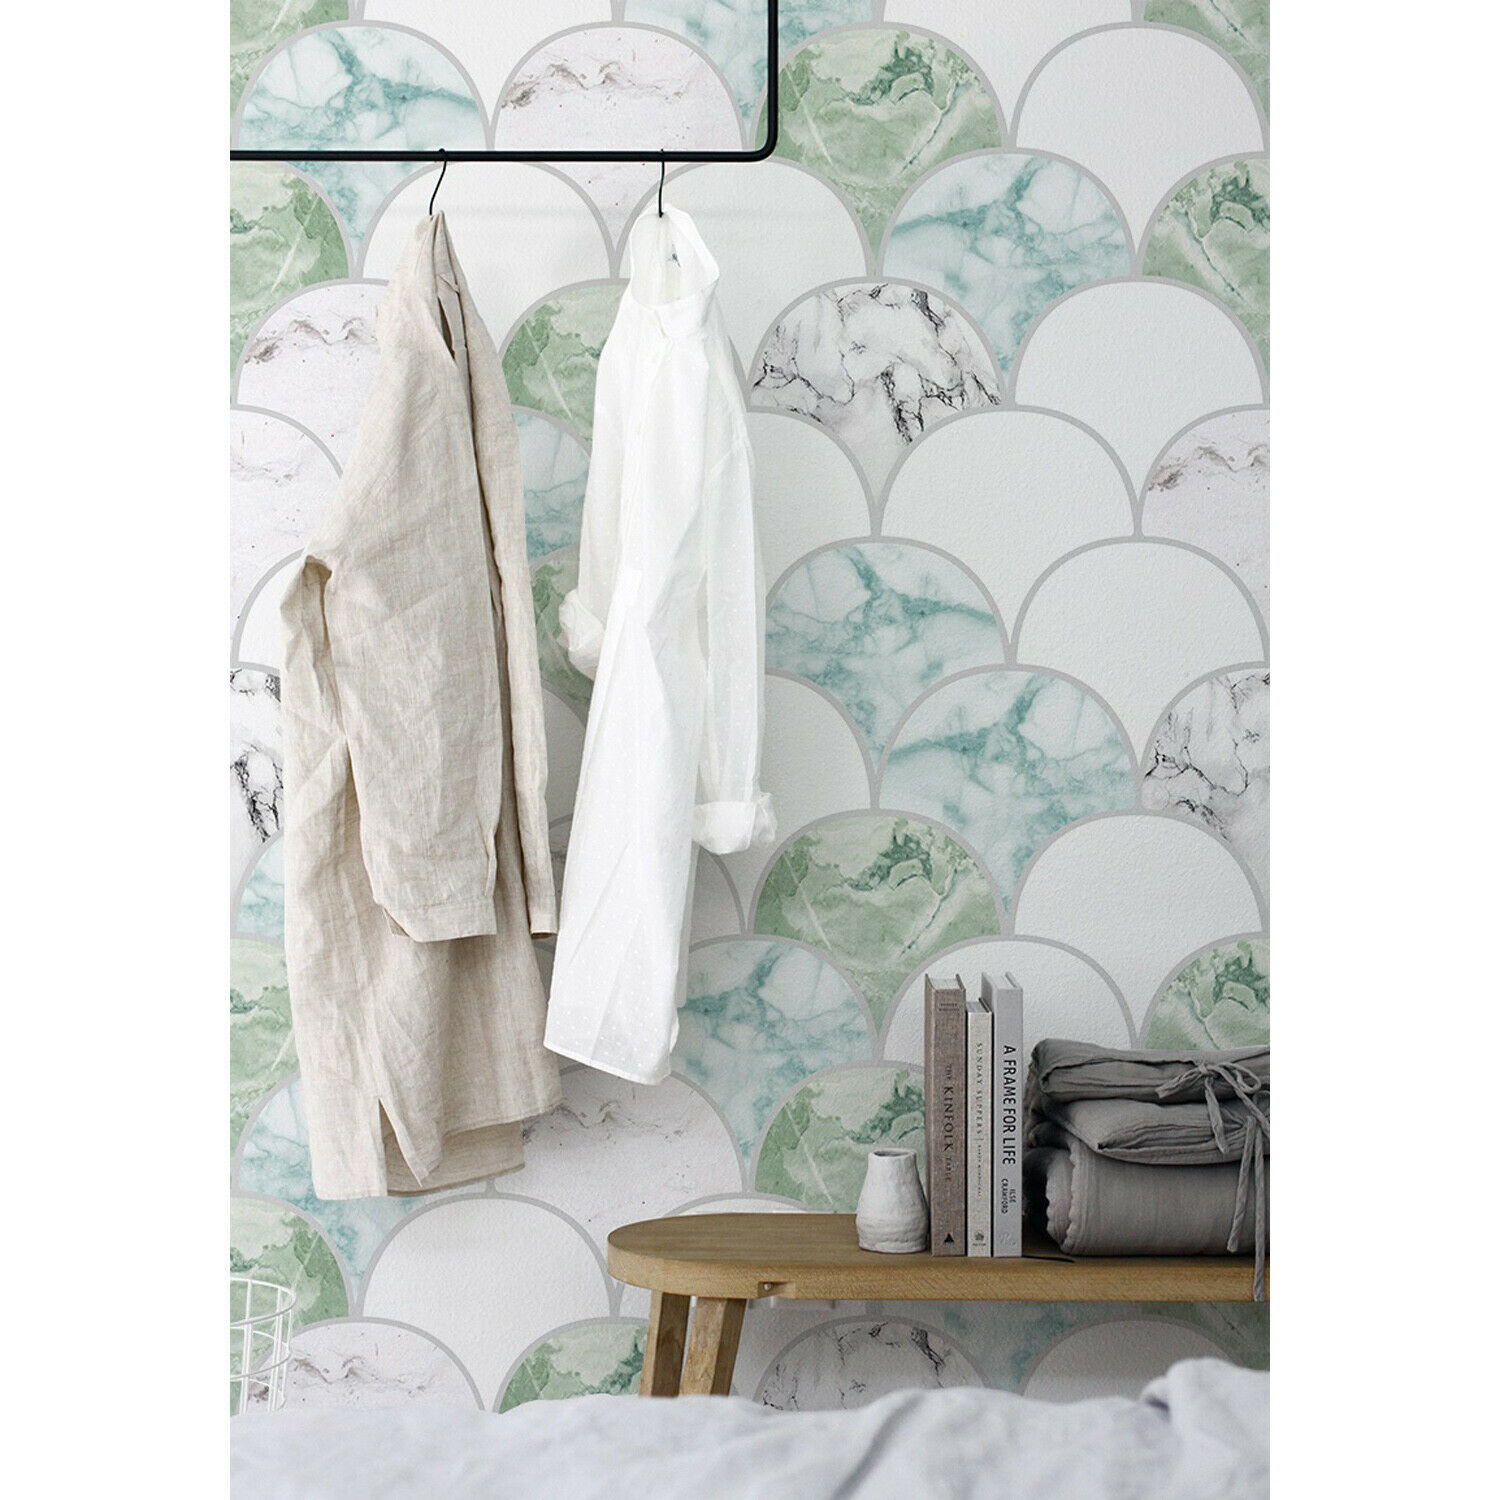 Décoration Murale Adhésive Green Marble Marble Marble Removable Wallpaper Self Adhesive Wall